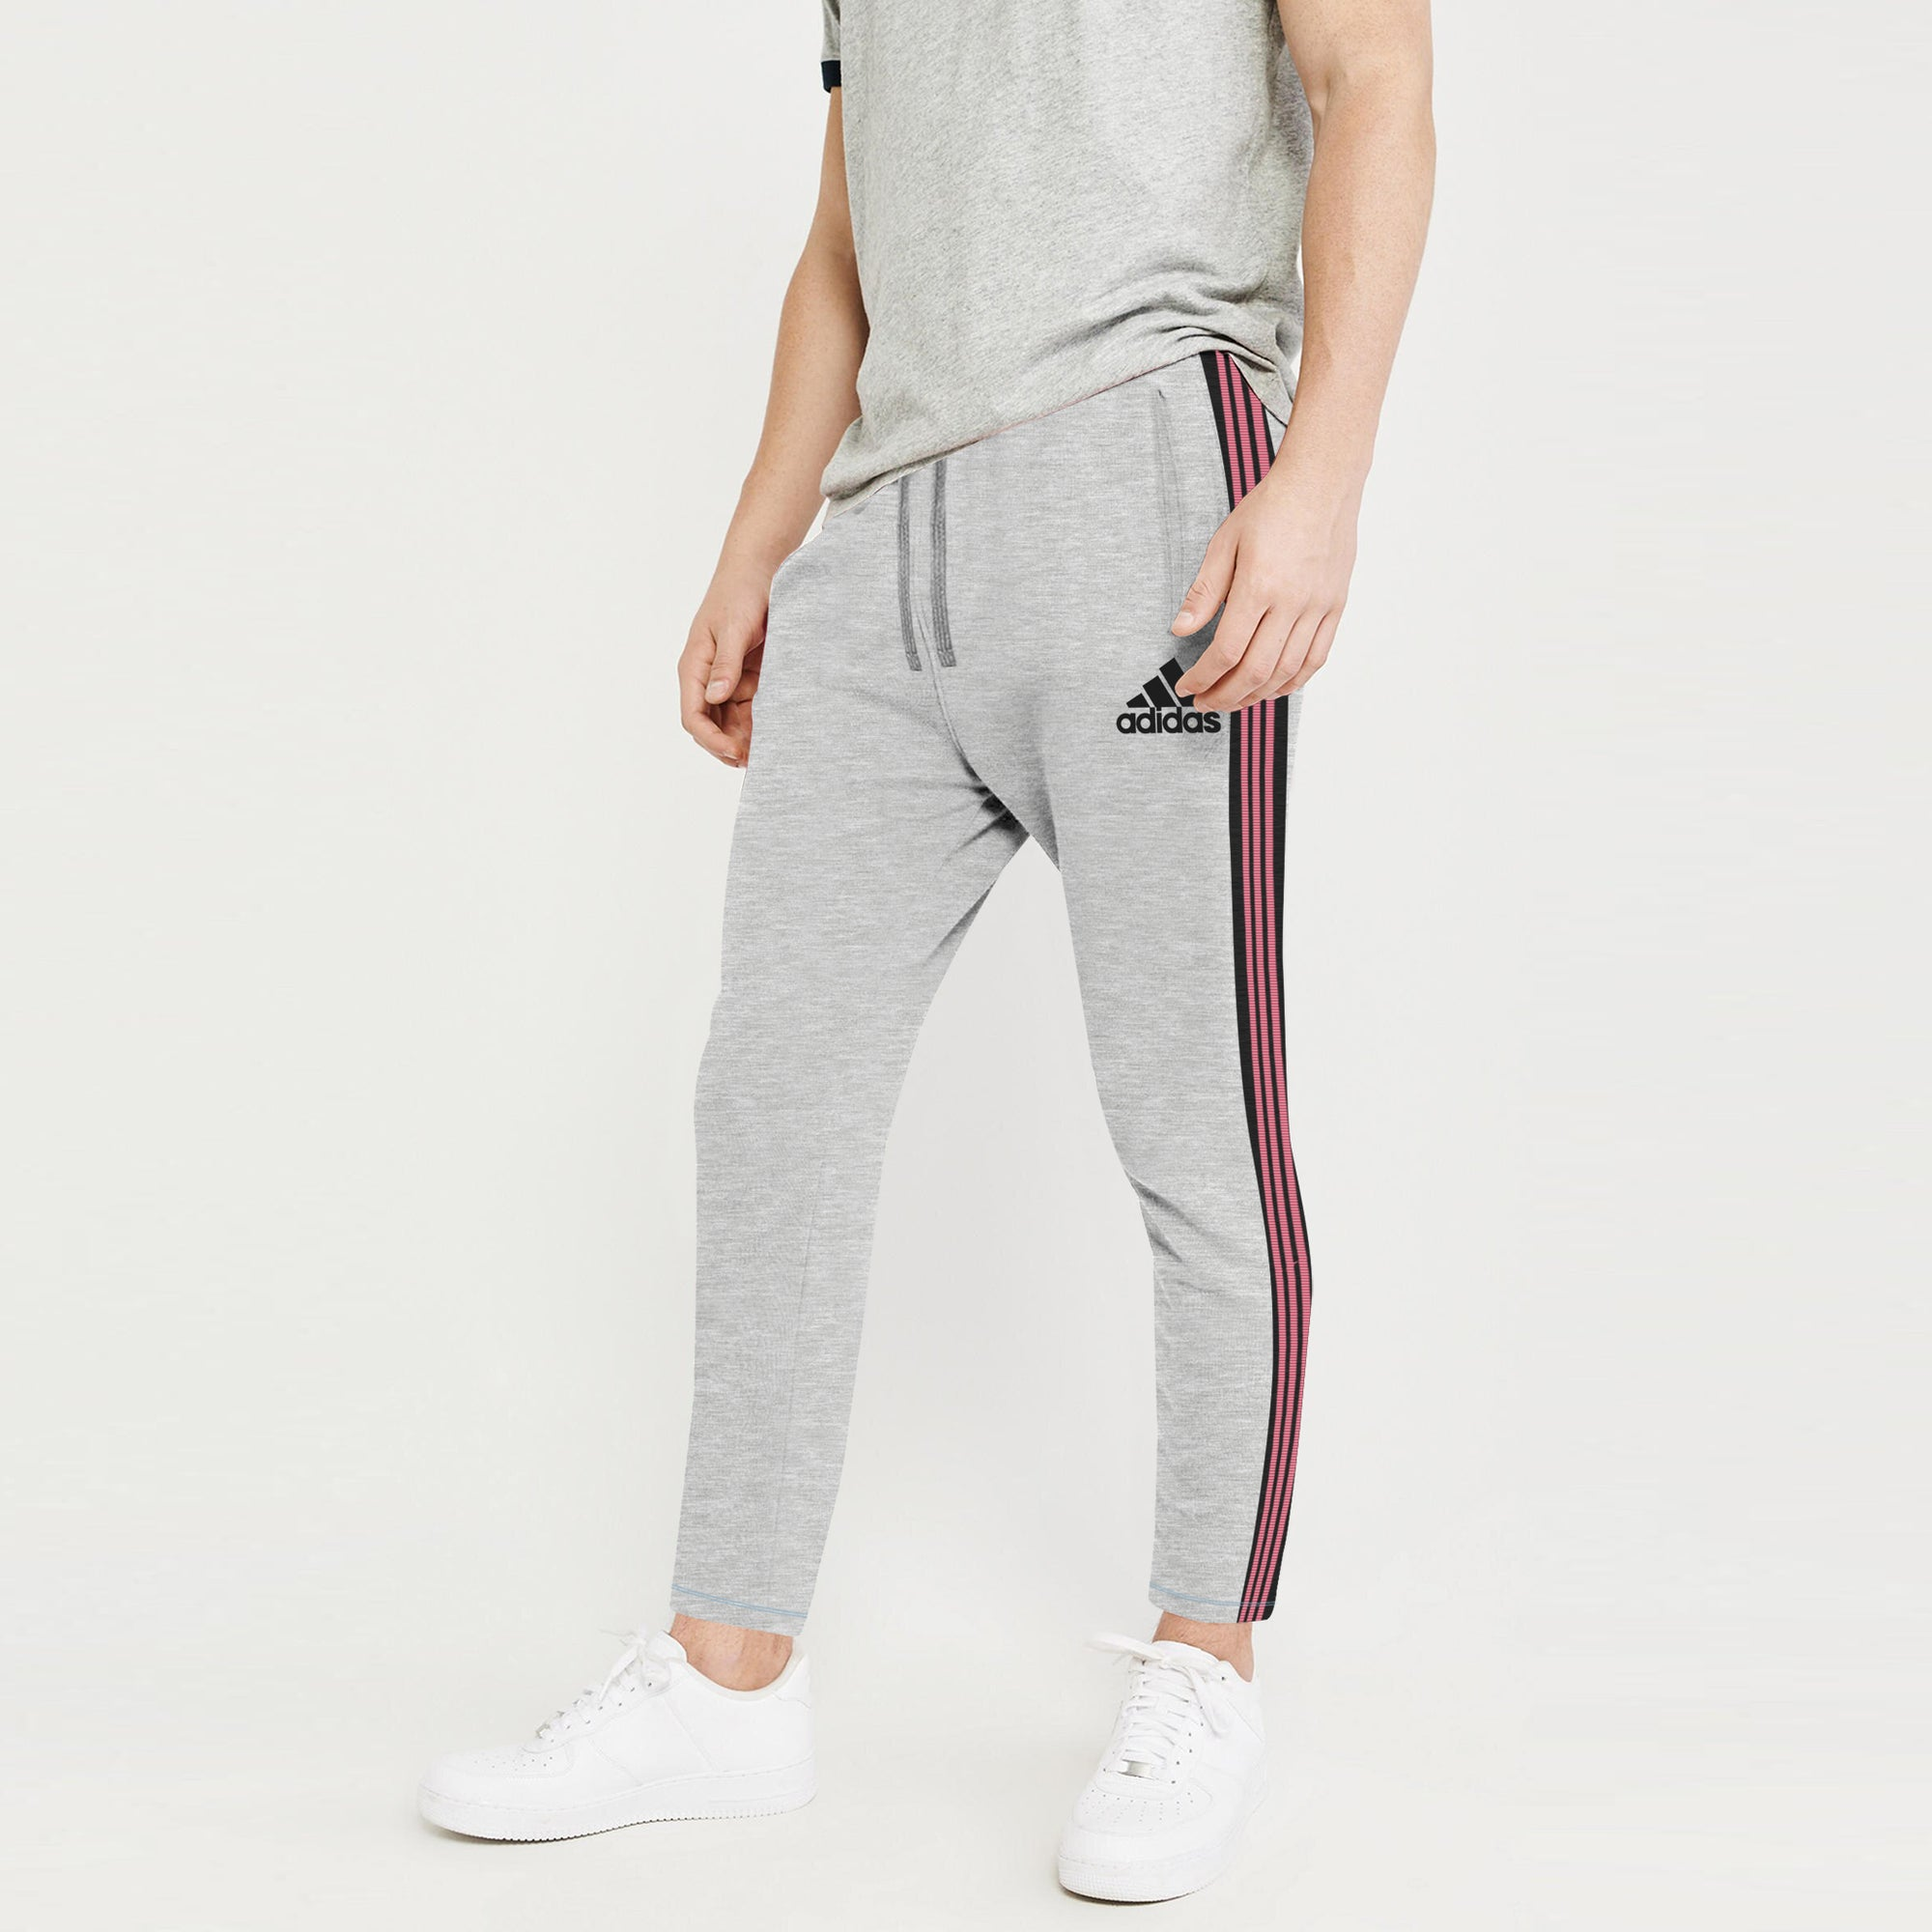 Adidas Single Jersey Regular Fit Jogger Trouser For Men-Grey With Charcoal & Red Melange Stripe-BE8791